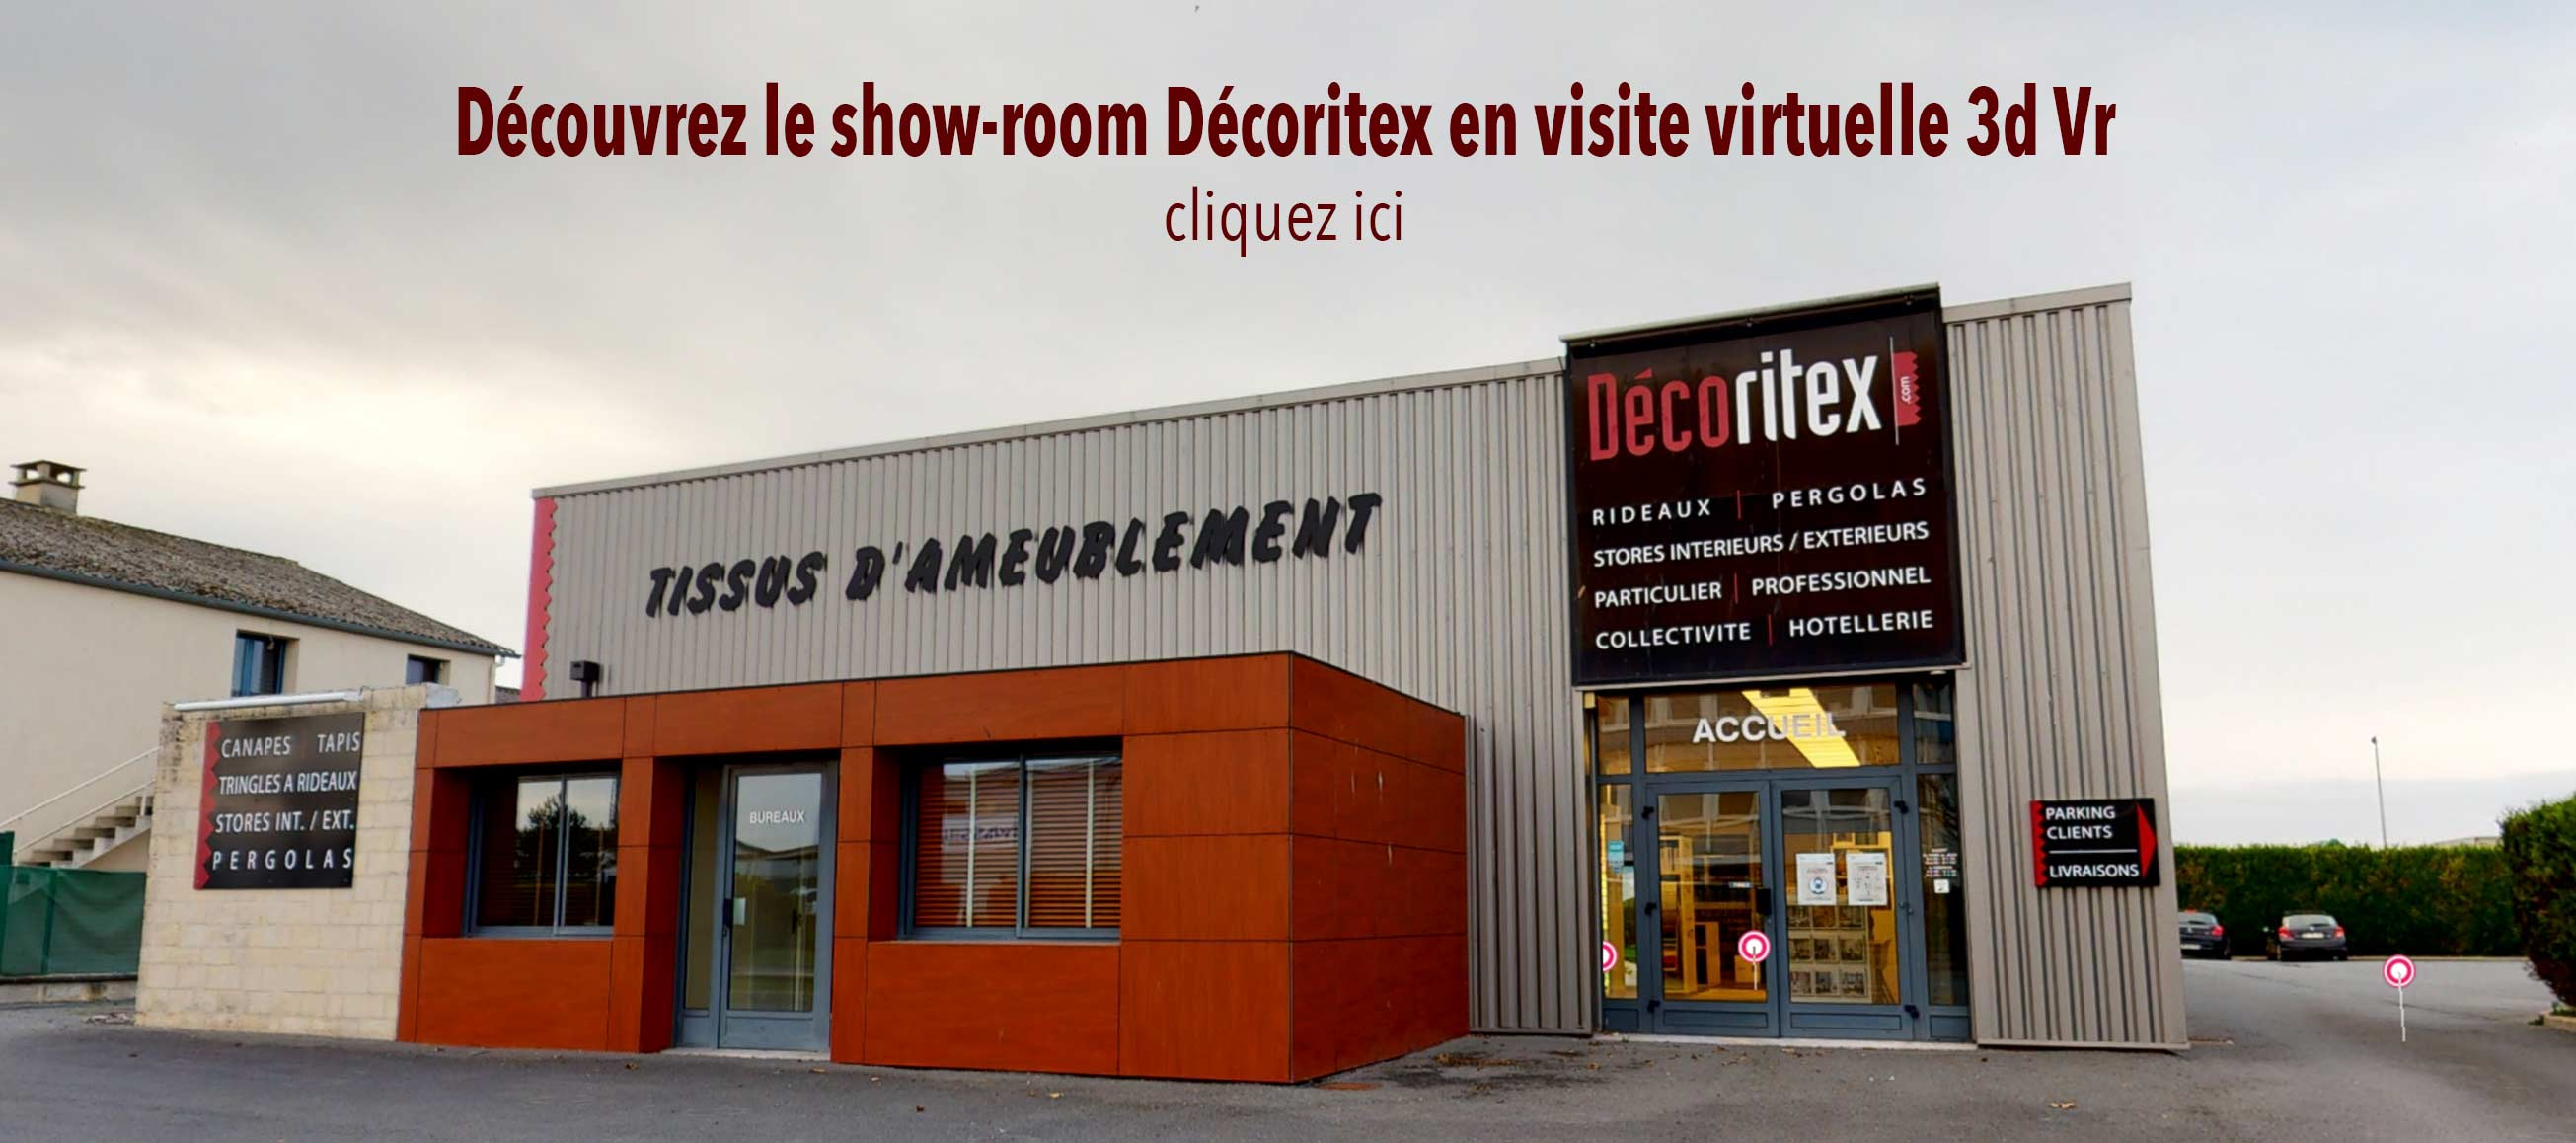 Visite virtuelle 3d vr du show-room Décoritex